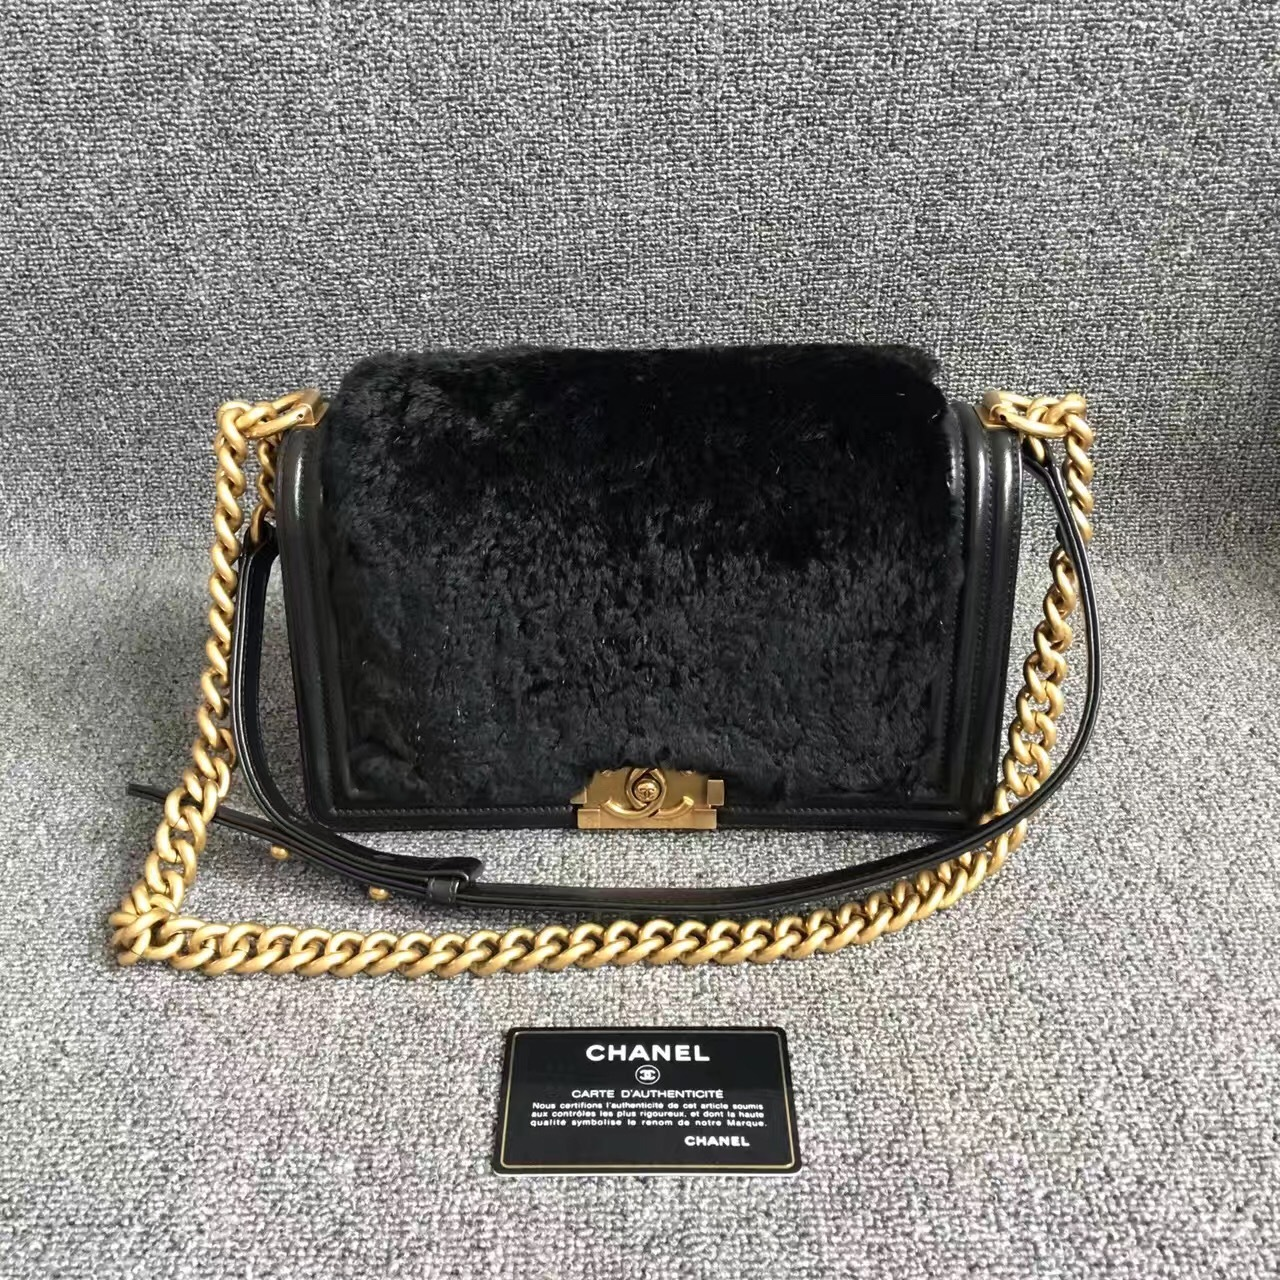 AUTHENTIC CHANEL LIMITED EDITION BLACK RABBIT FUR MEDIUM BOY FLAP BAG GHW